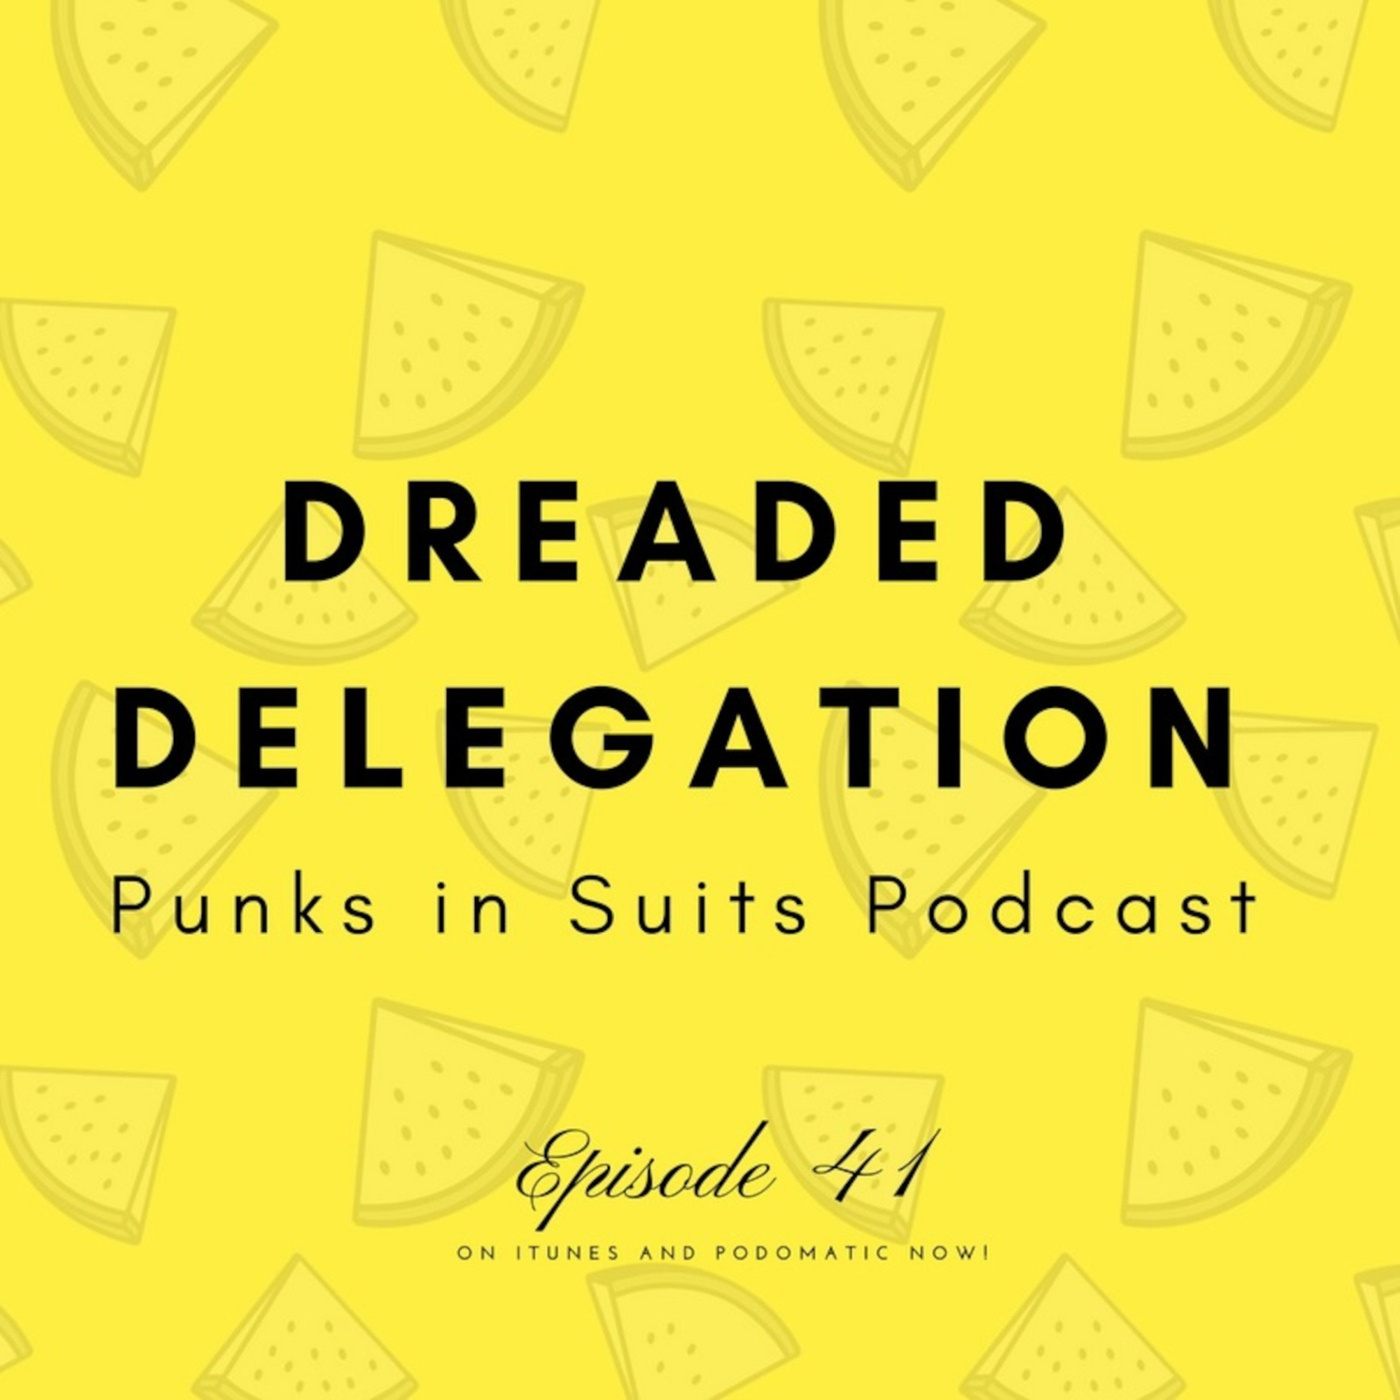 Episode 41: Dreaded Delegation